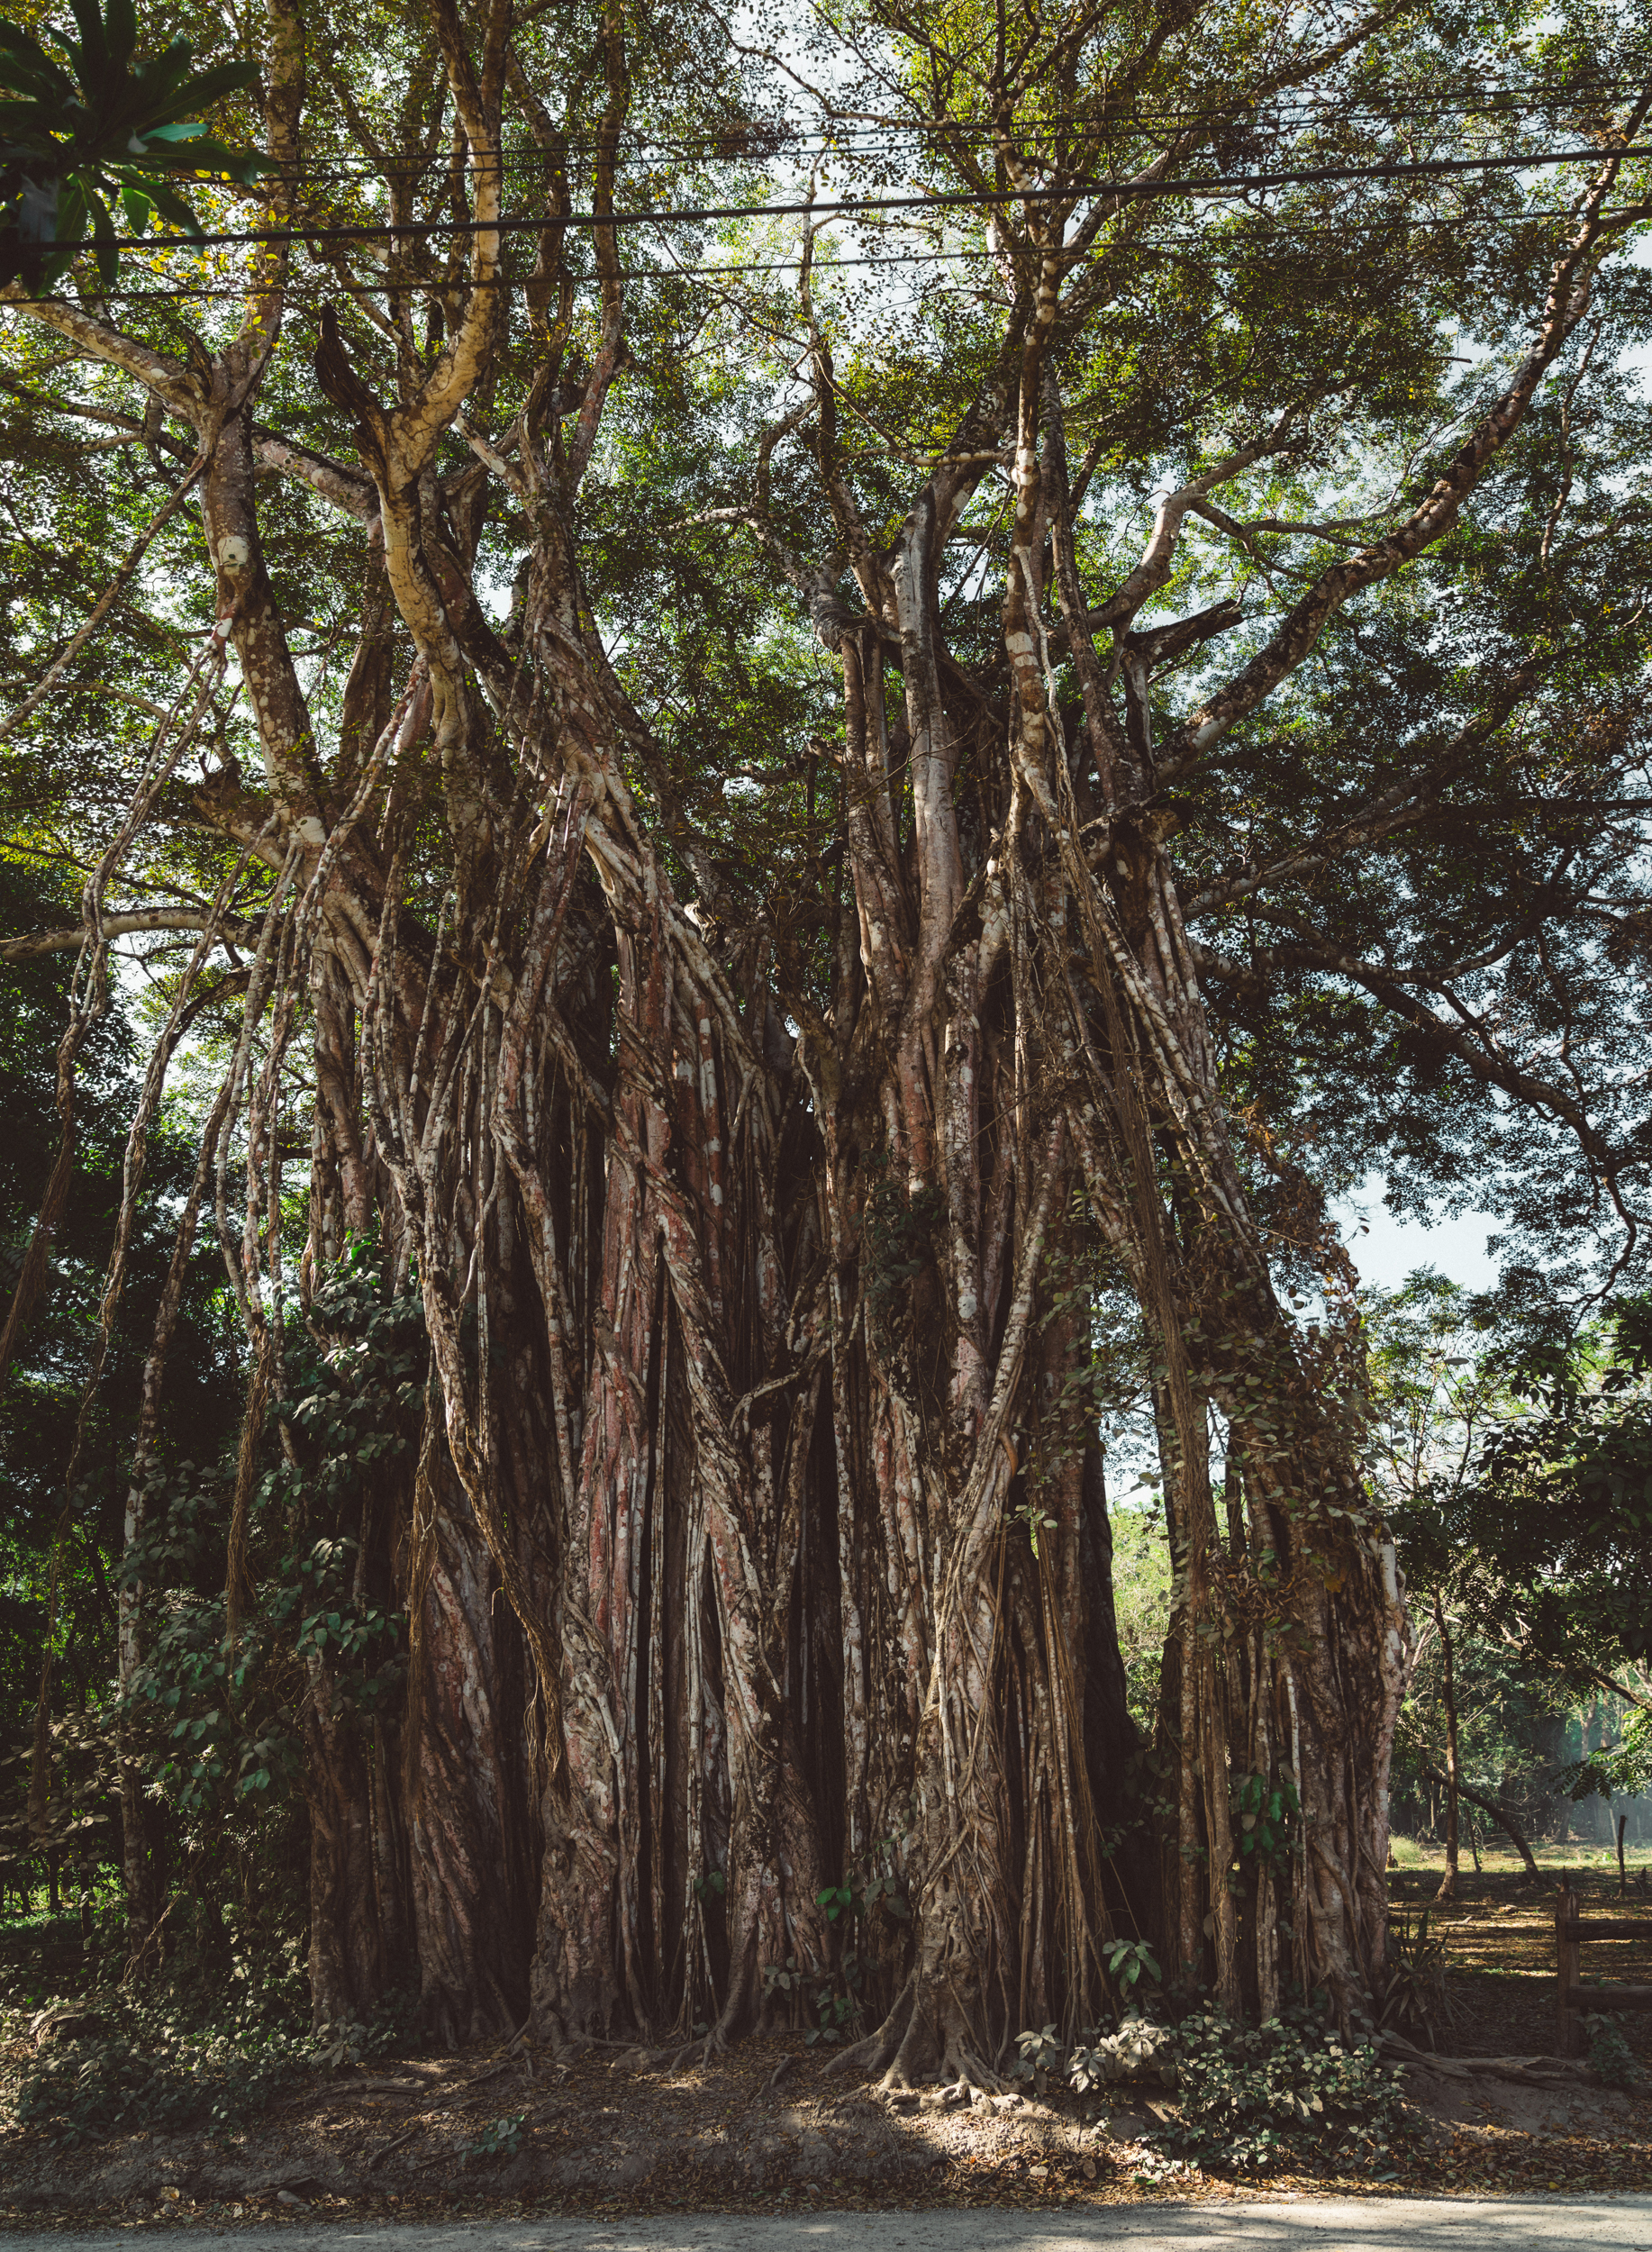 We took a couple trips out to the nearby town of Cabuya to do some snorkeling. On the road there is this Ficus tree, which is apparently a contender for widest in Costa Rica. This is a stitch of four different images.